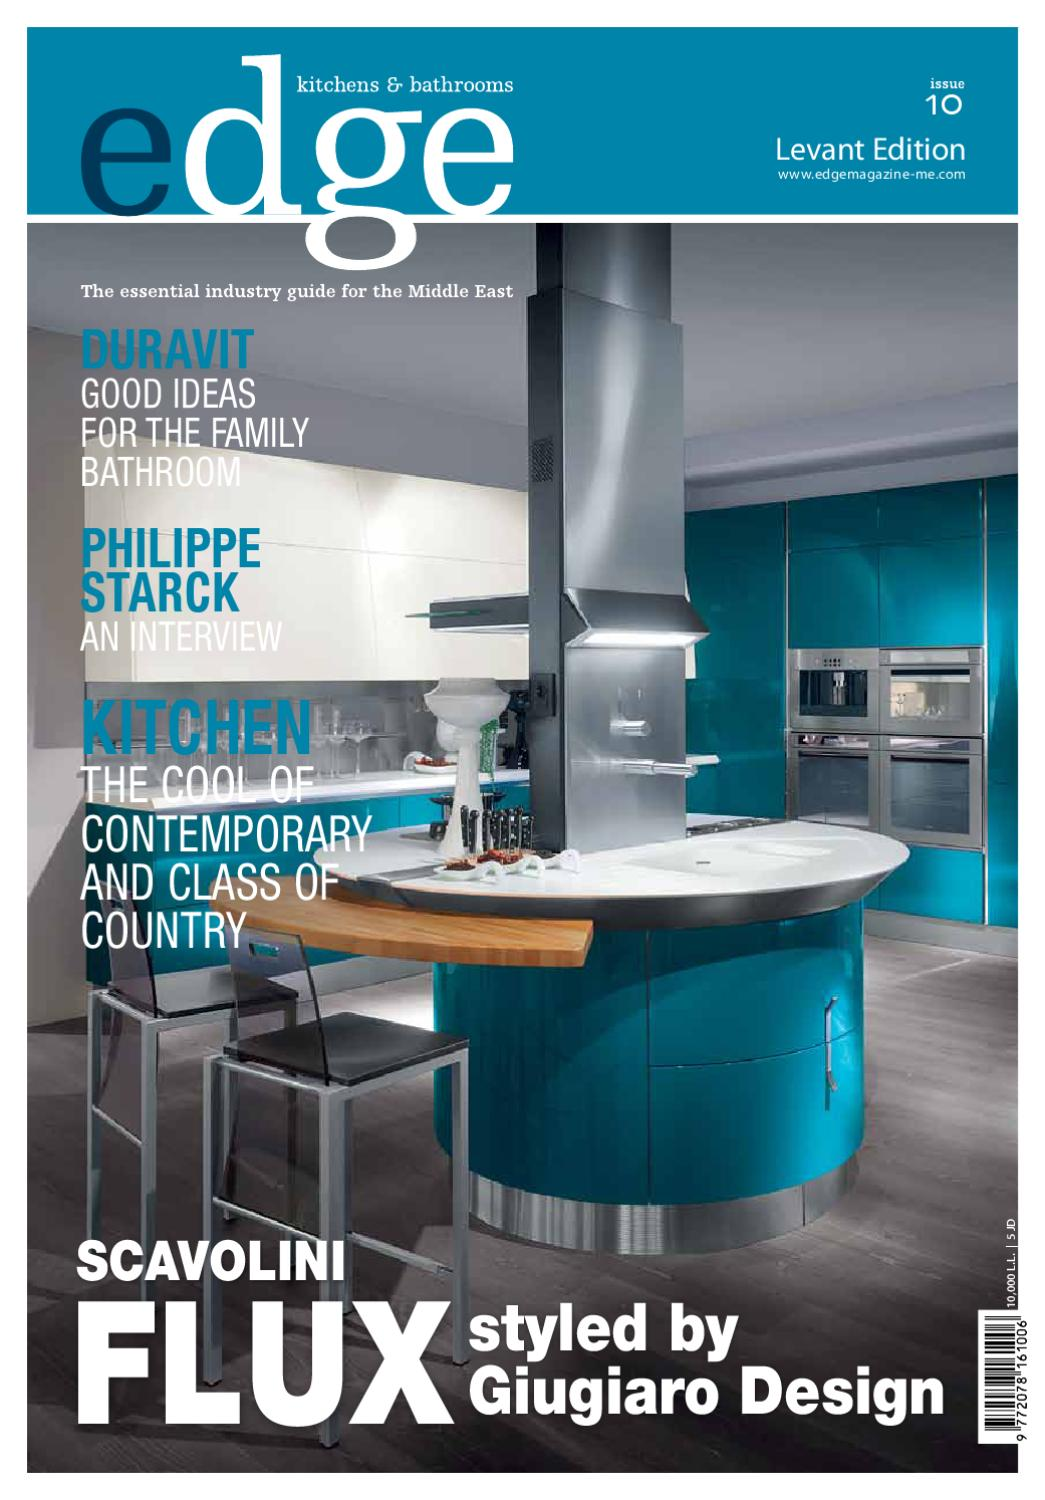 EDGE LEVANT Kitchens & Bathrooms Issue 09 by Amed - issuu